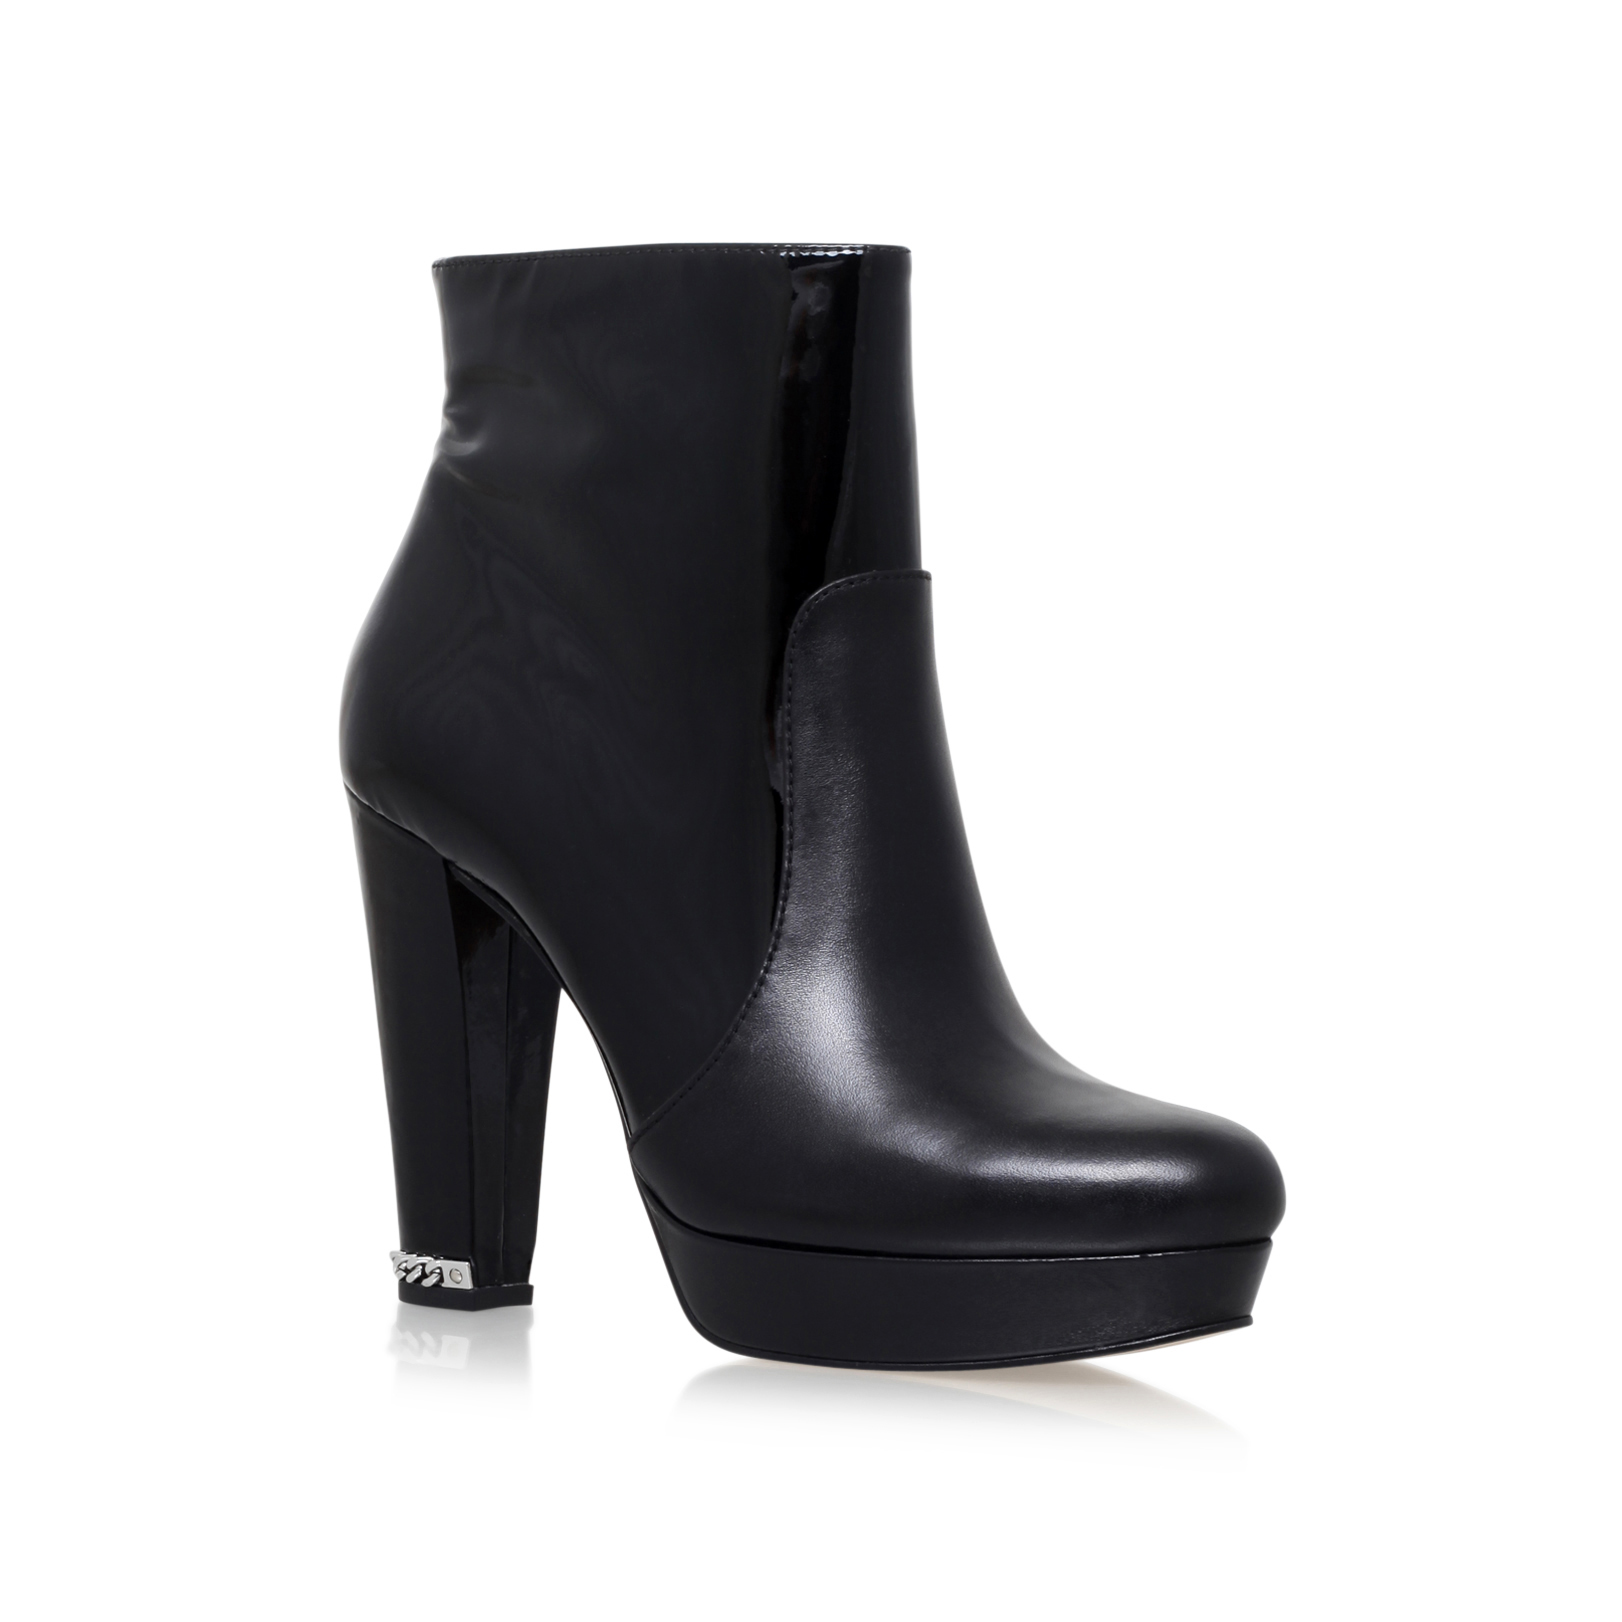 SABRINA ANKLE BOOT